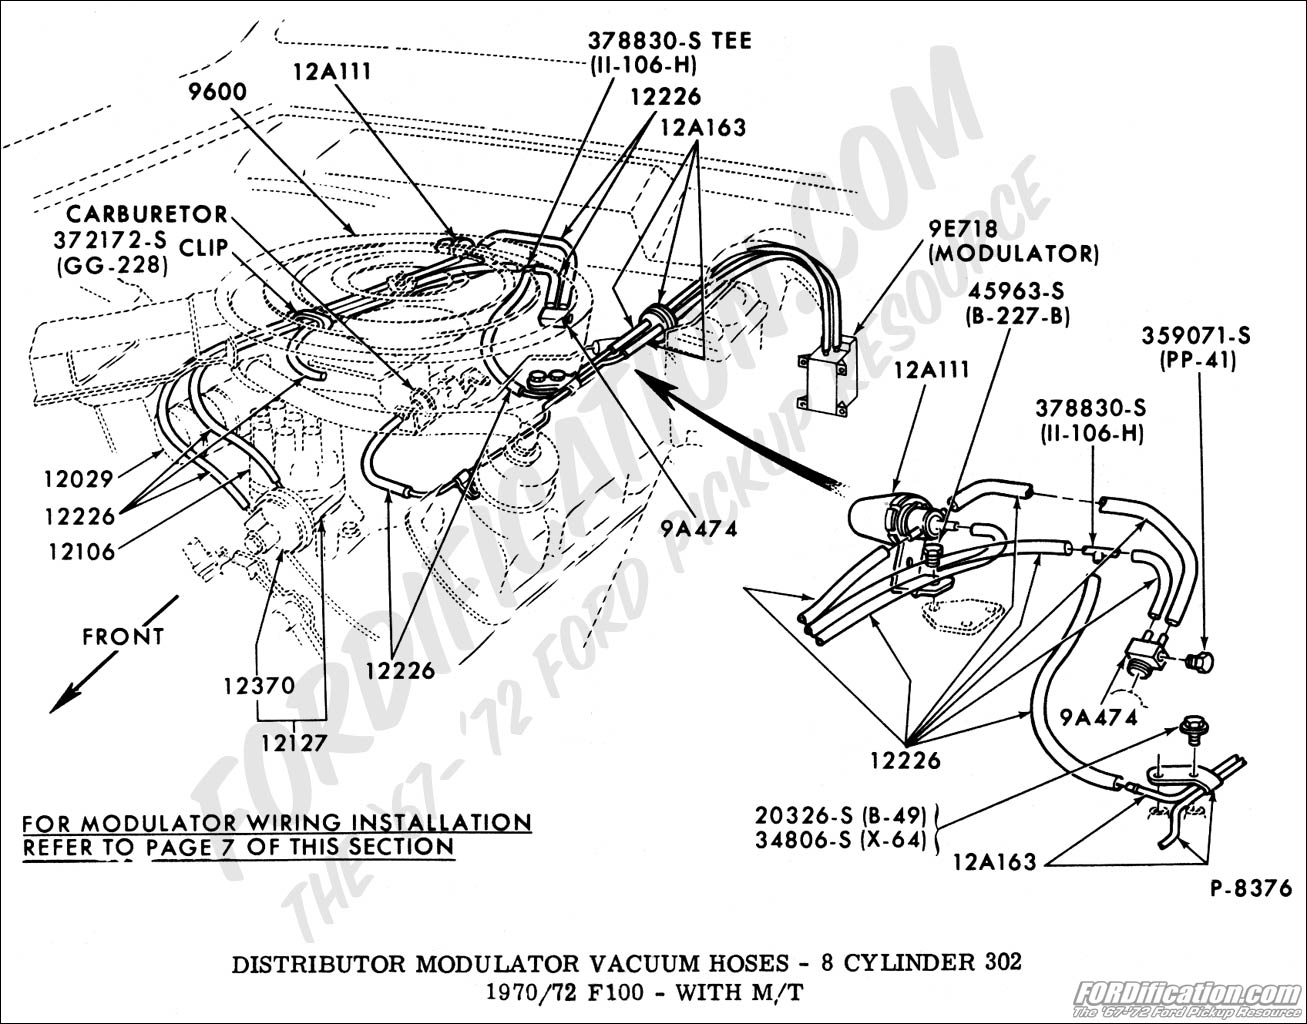 Schematics i 1985 corvette horn wiring diagram at ww1 freeautoresponder co